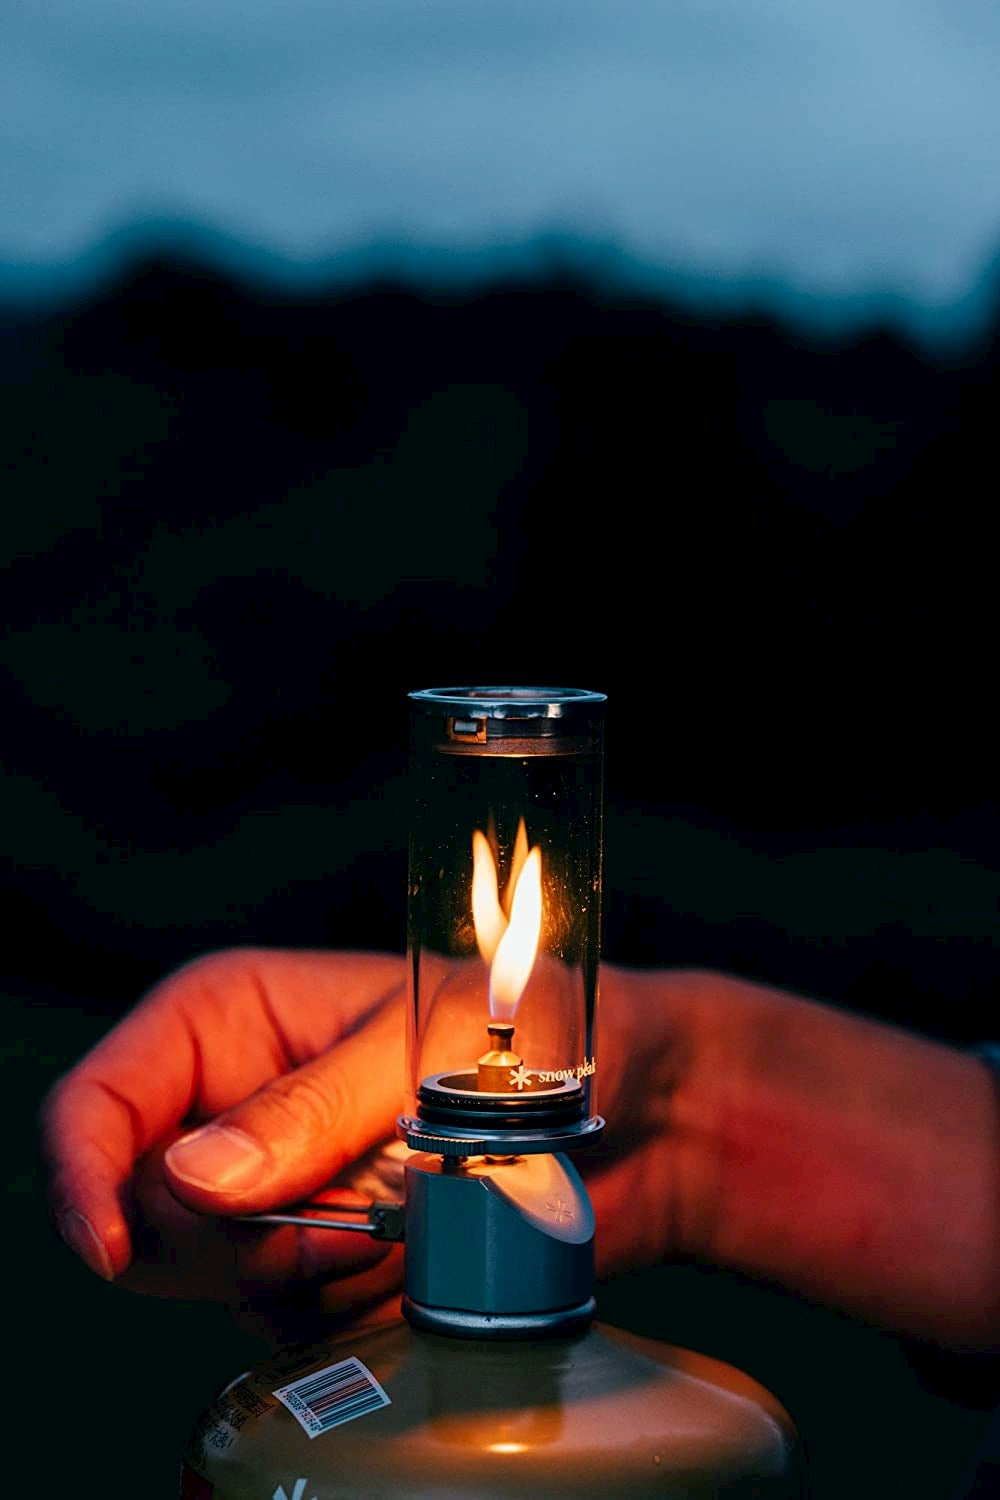 Snow peak mini flame nocturne lantern.